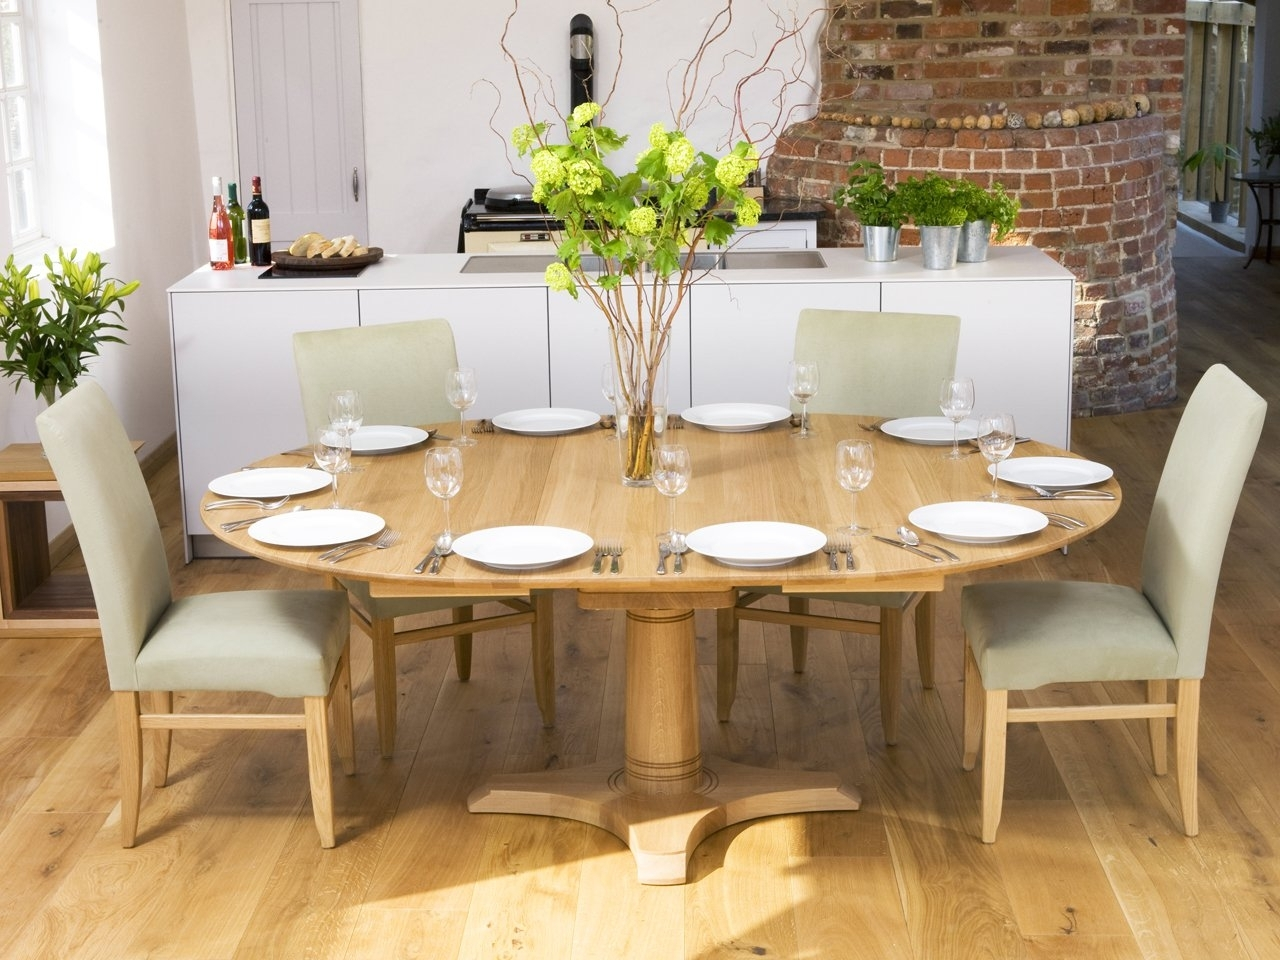 Circular Extending Dining Tables And Chairs Regarding Famous Our Round And Square Dining Tables (View 7 of 25)